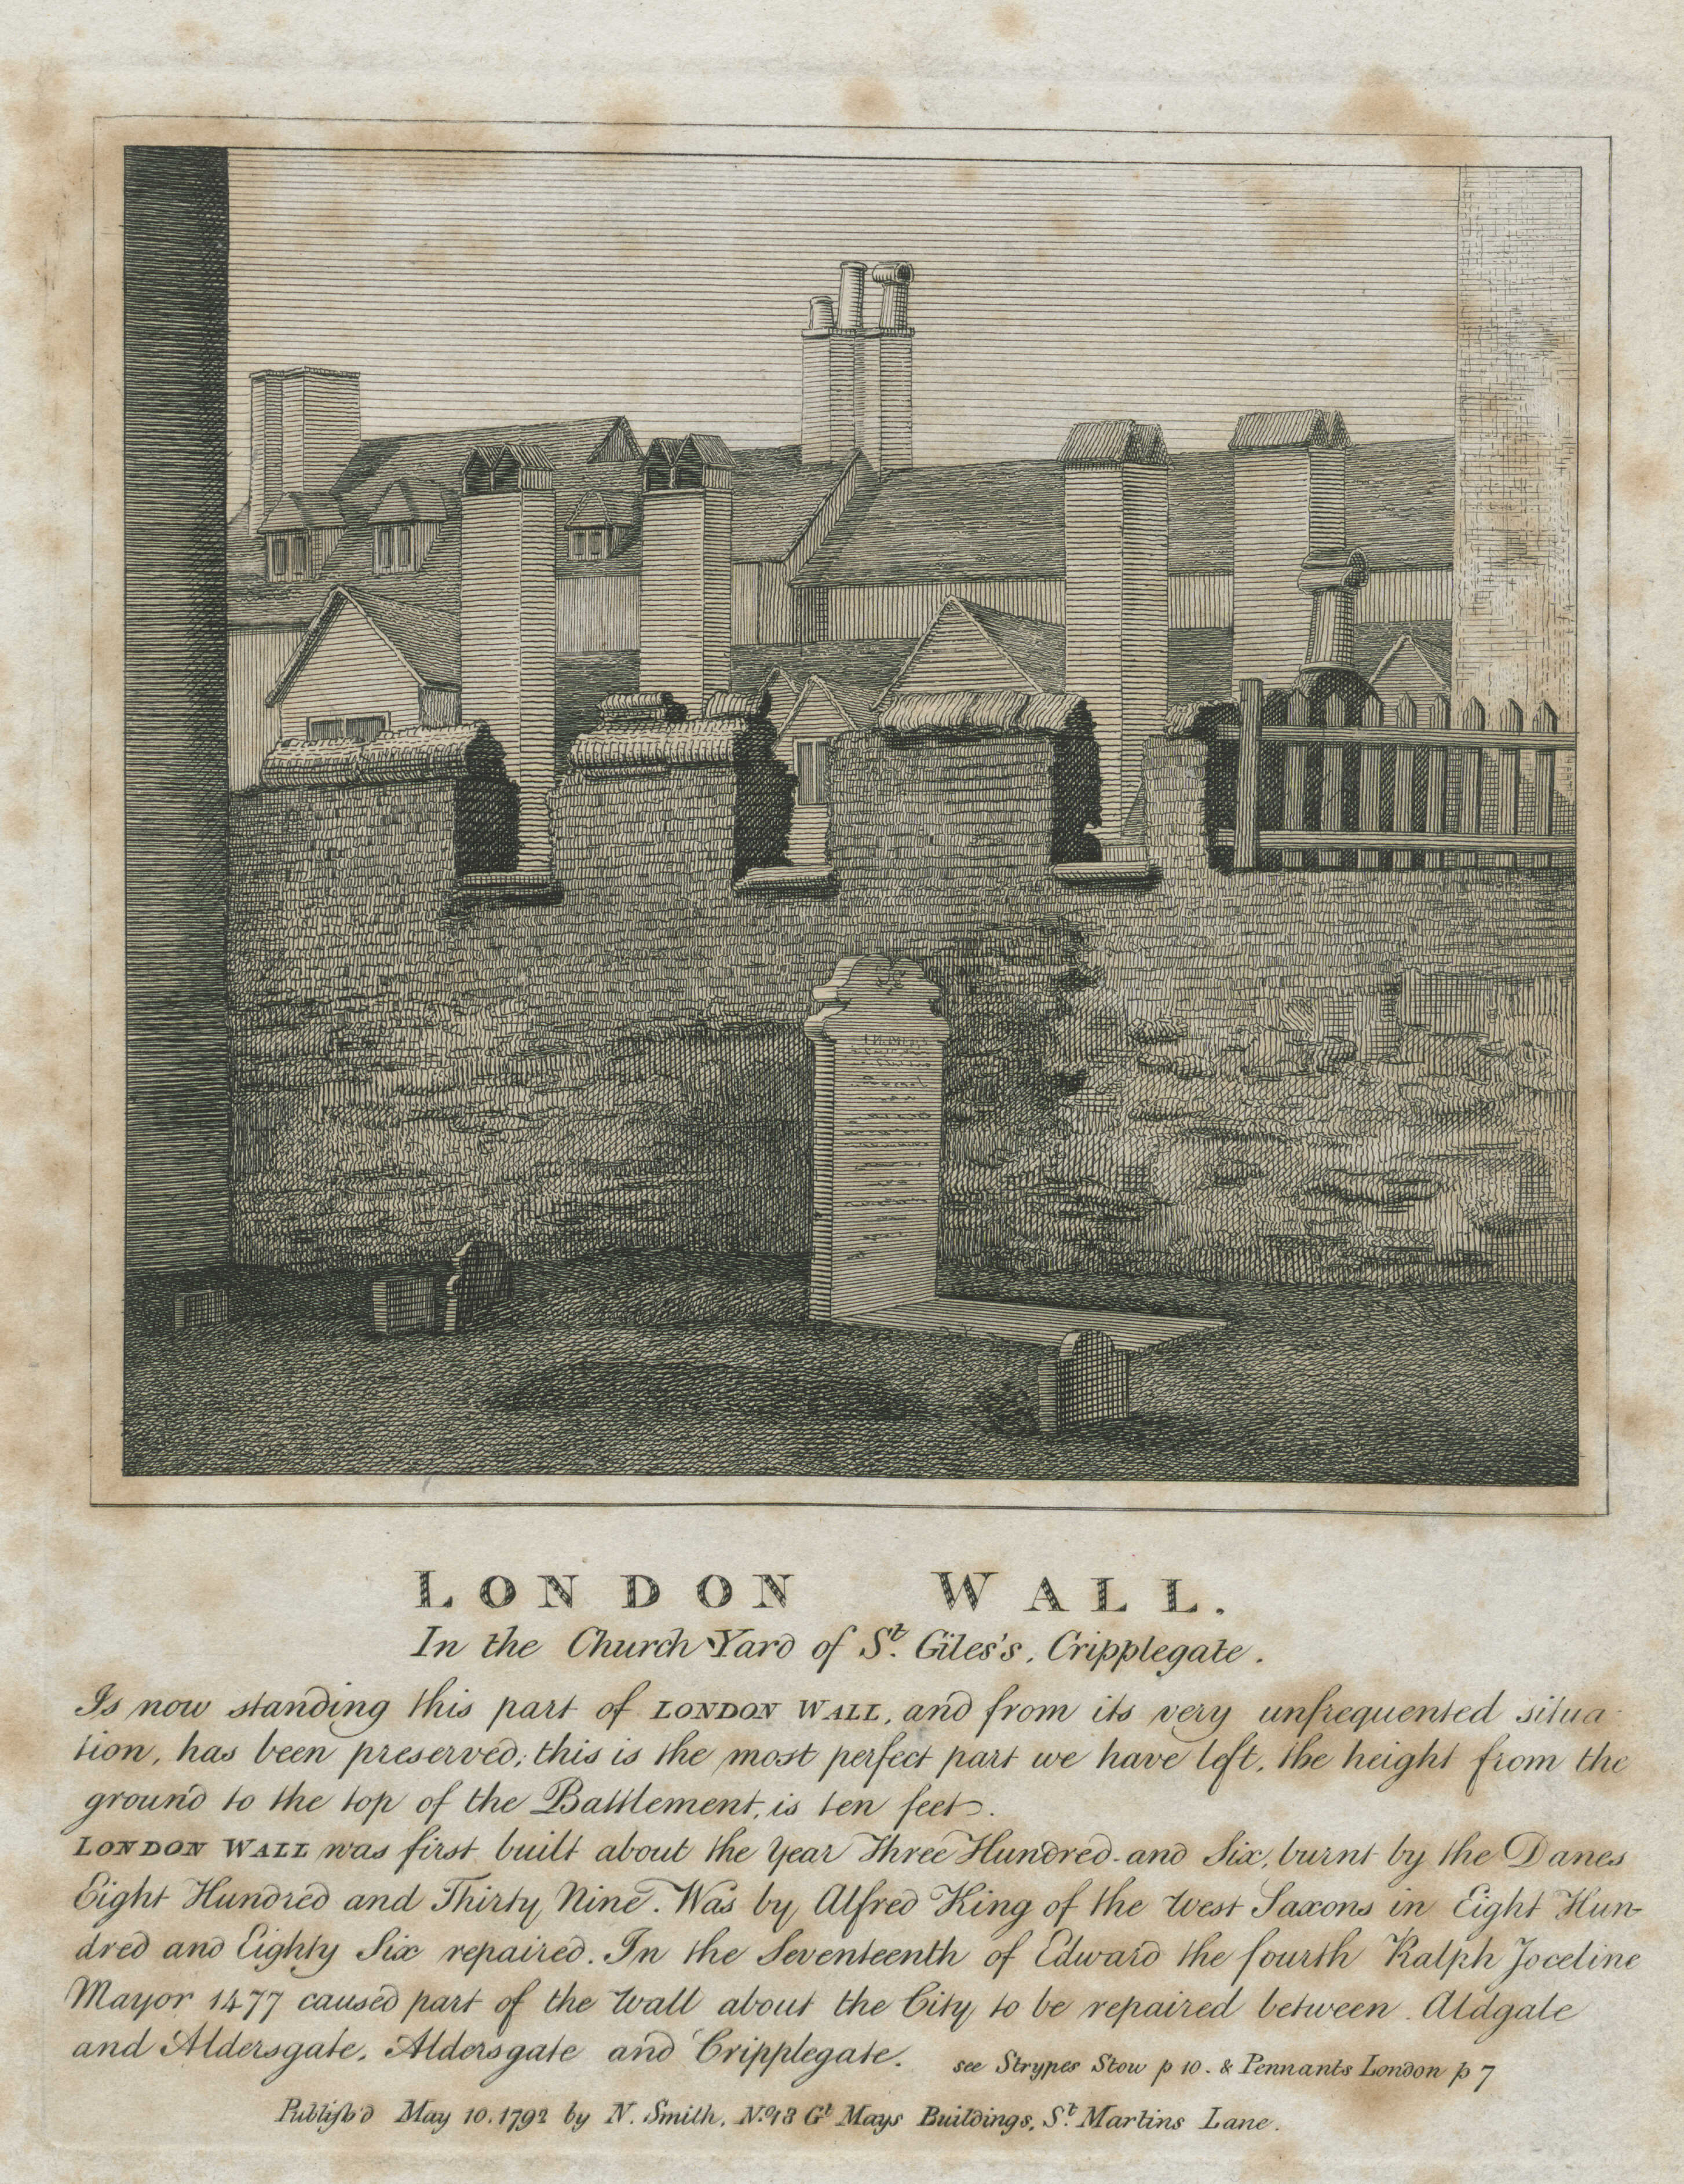 28-london-wall-in-the-church-yard-of-st-giless-cripplegate